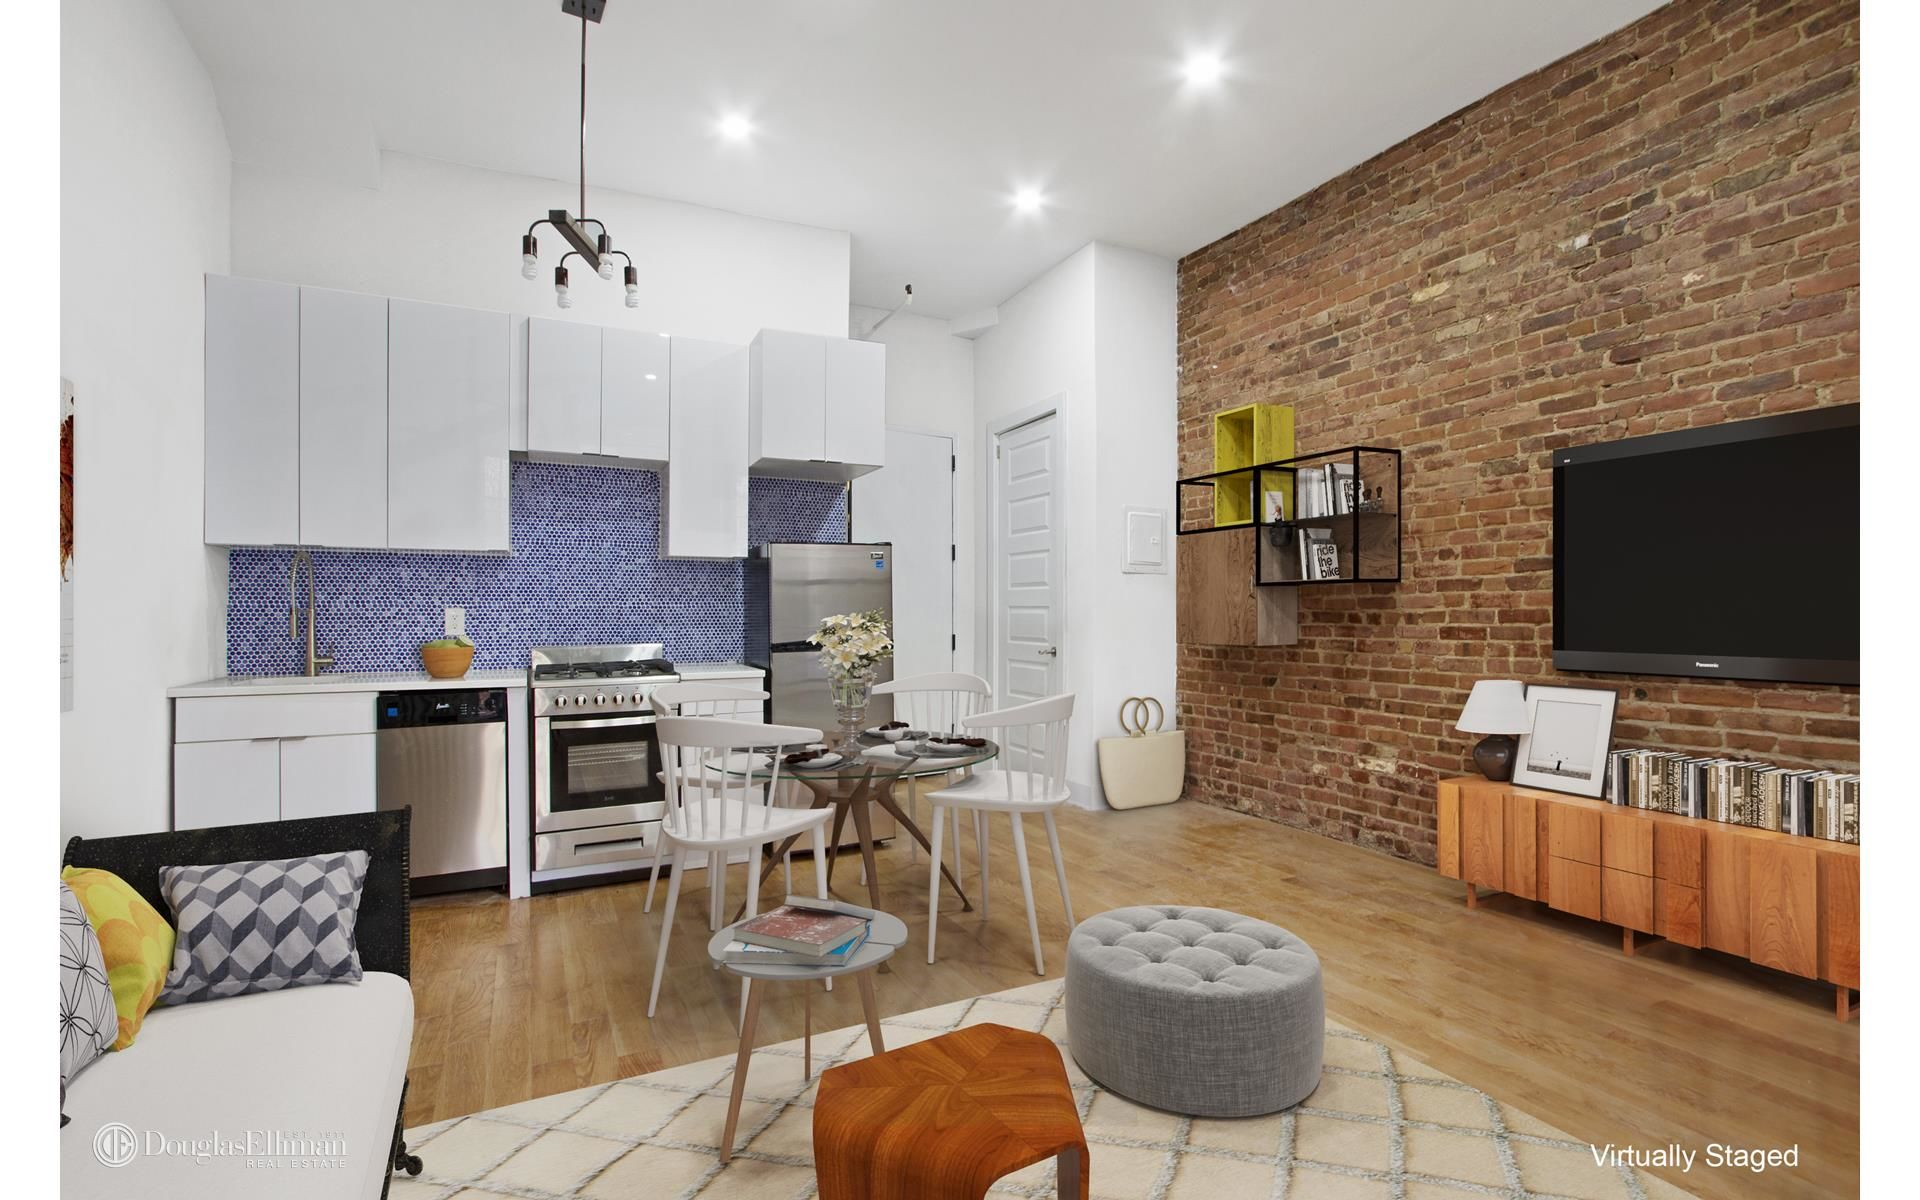 299 Vanderbilt Ave Photo 1 - ELLIMAN-2558258